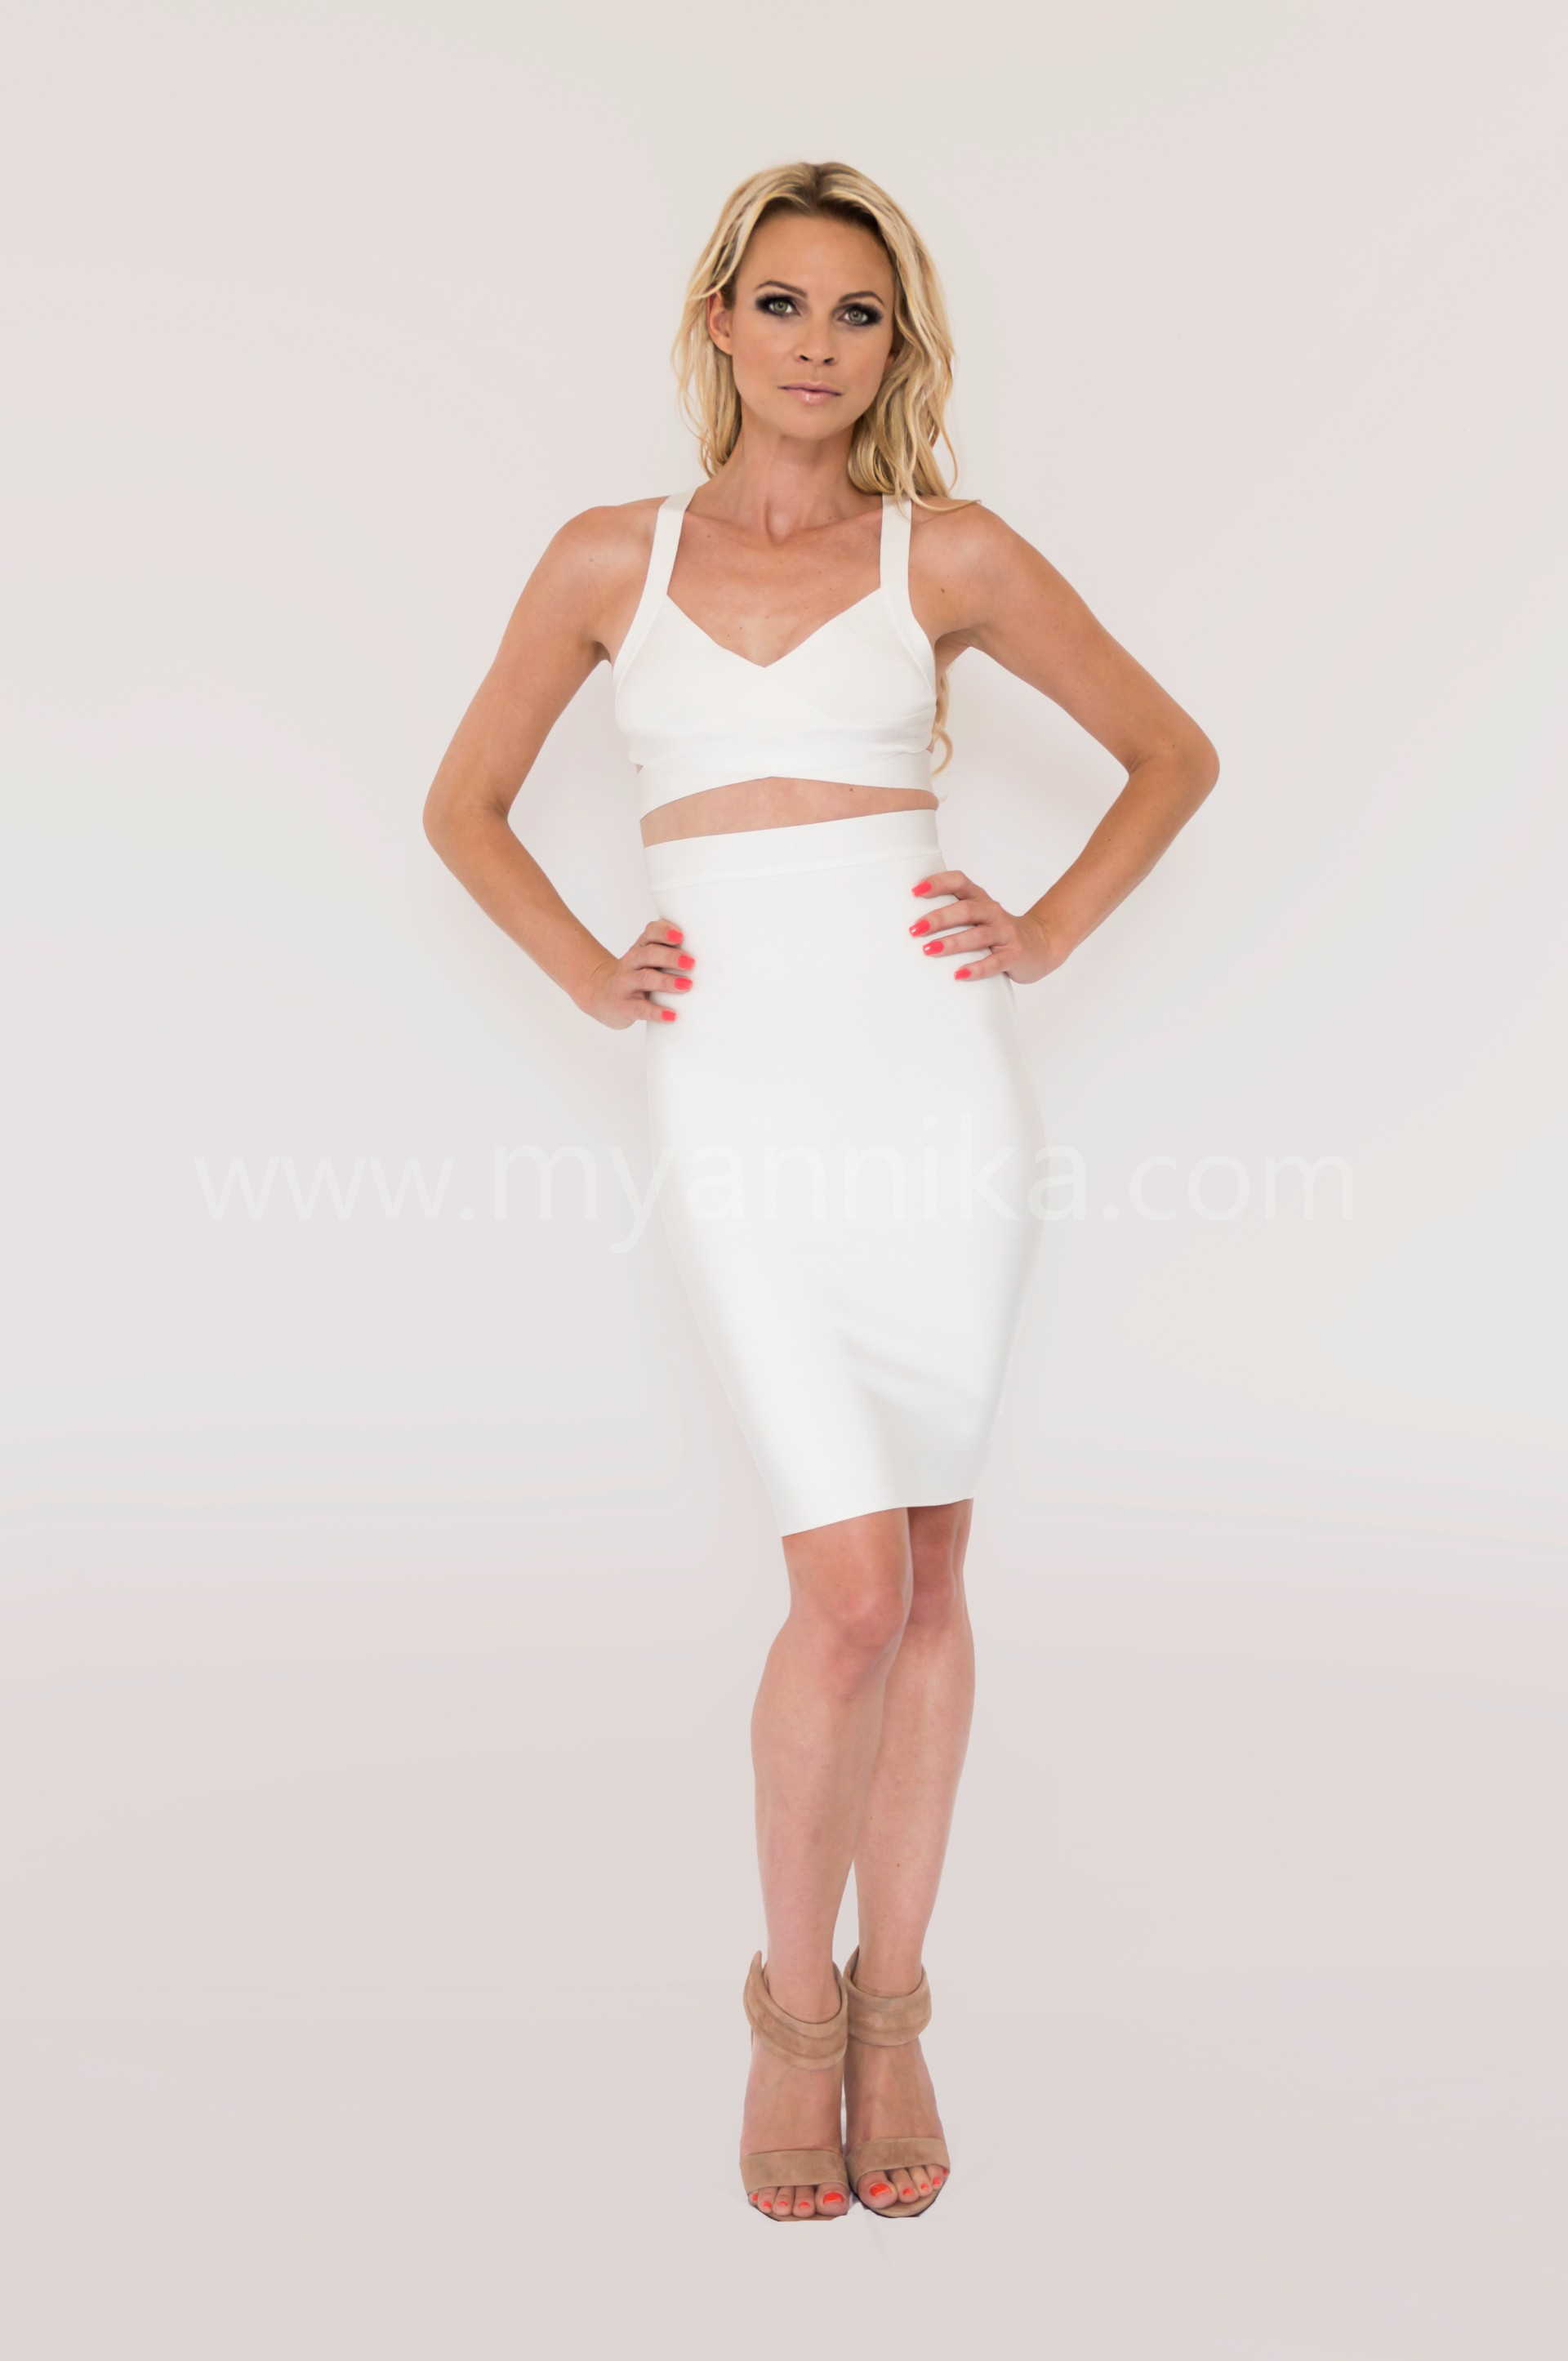 Malibu - White 2 Piece Bandage Dress Combo with Pencil Skirt and Crop Top Annika - Bandage Dresses | Celebrity Party Dresses | Herve Leger Dresses Bandage dress detail